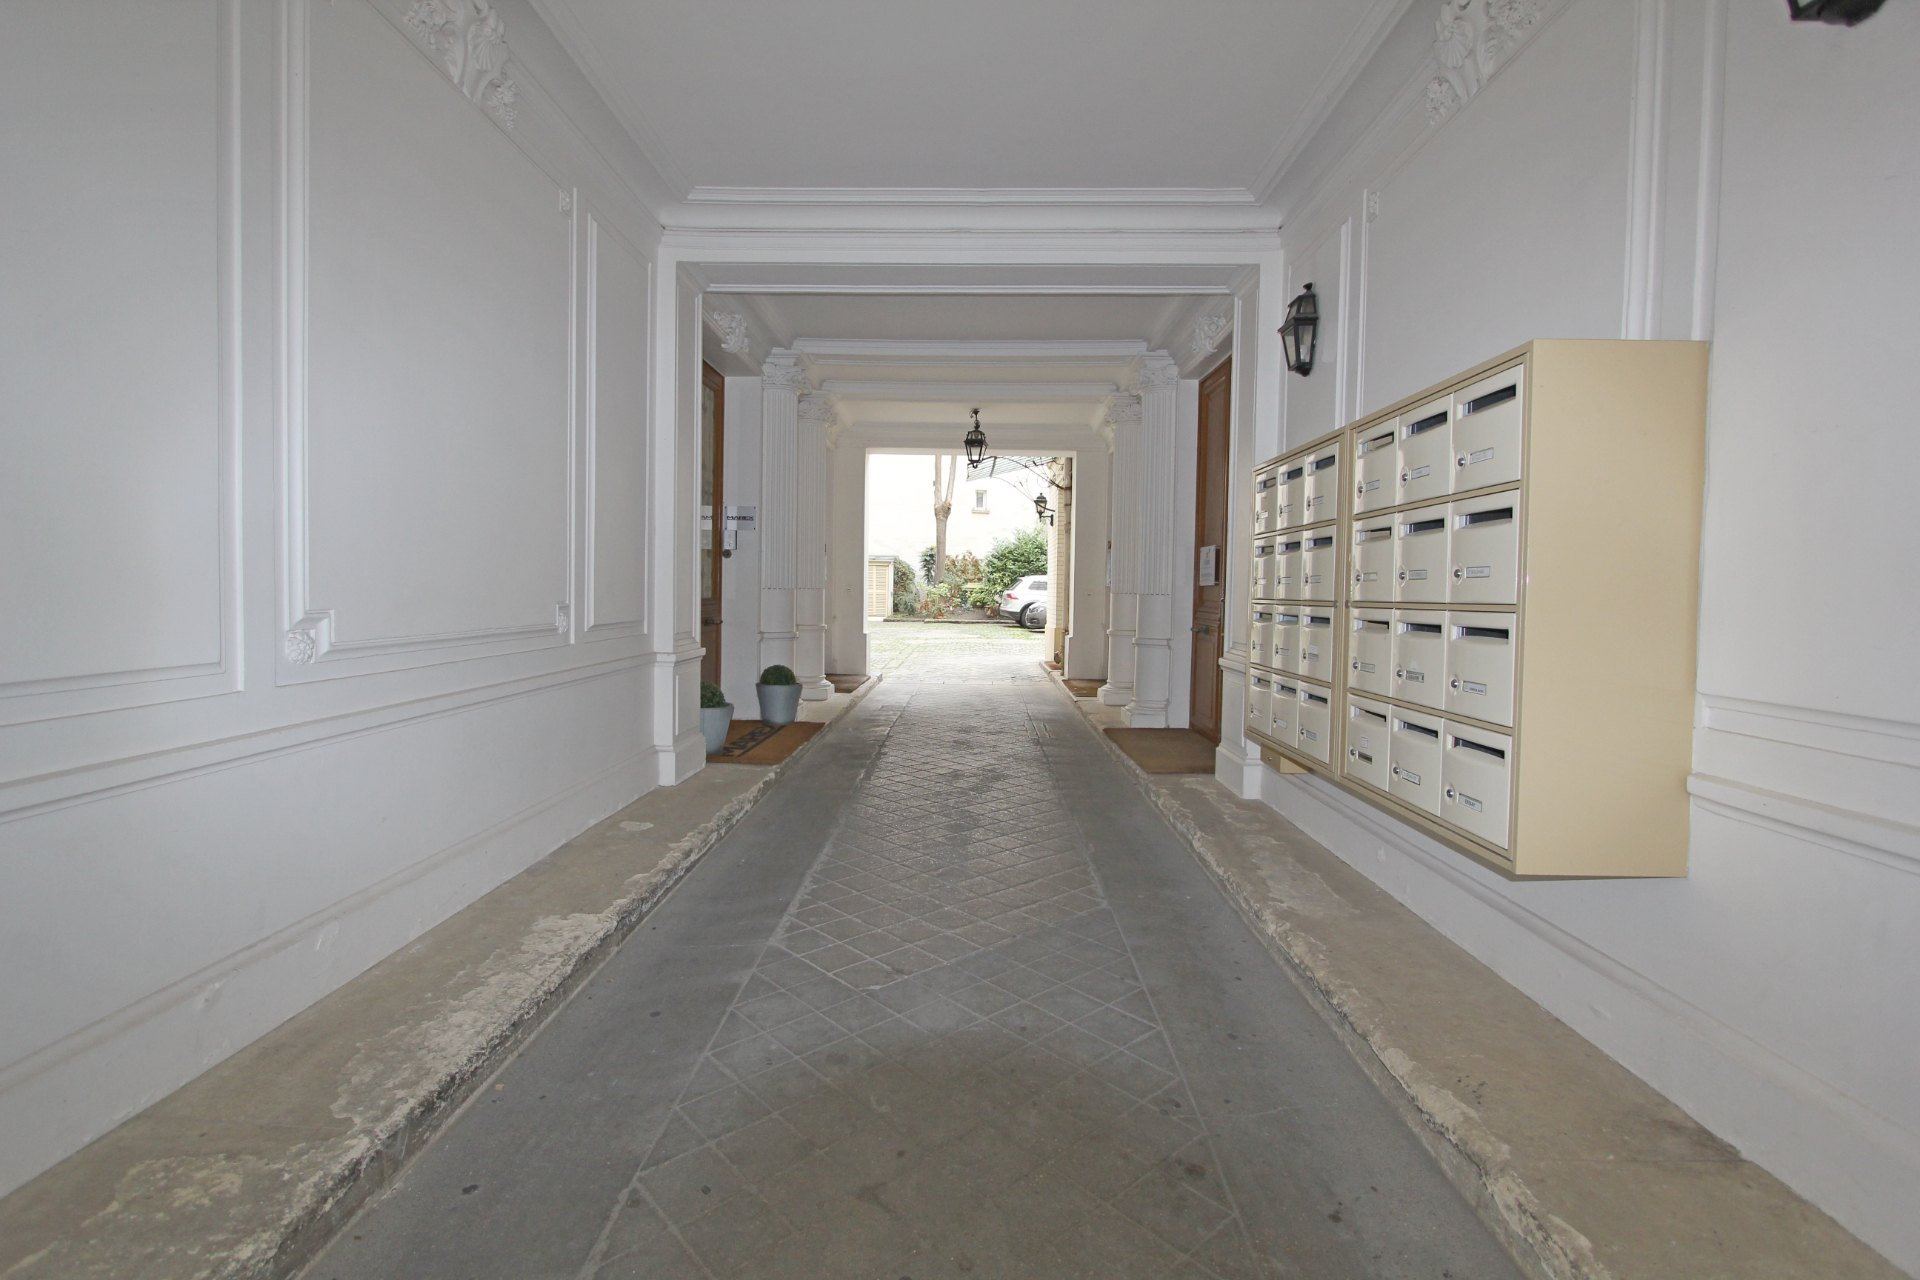 District Europe (rue Clapeyron in the 8th arrondissement), Legally launched studio of 9.88 m² Law Carrez located in a beautiful well maintained building 8